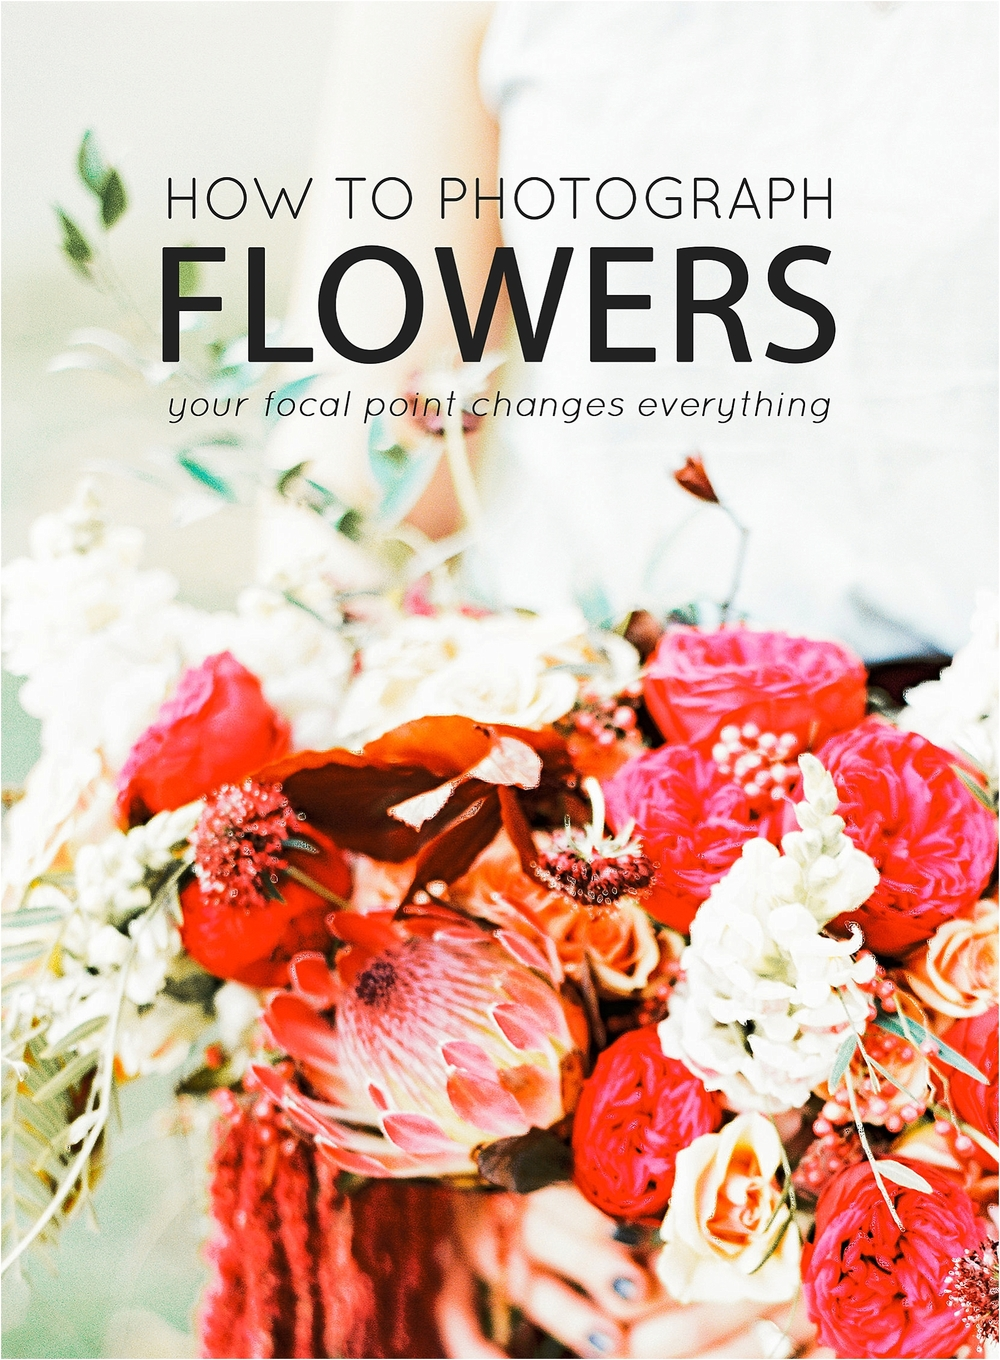 How to photograph flowers - Your Focal Point Changes the Entire Image - The Jordan Brittley Blog (www.jordanbrittleyblog.com)